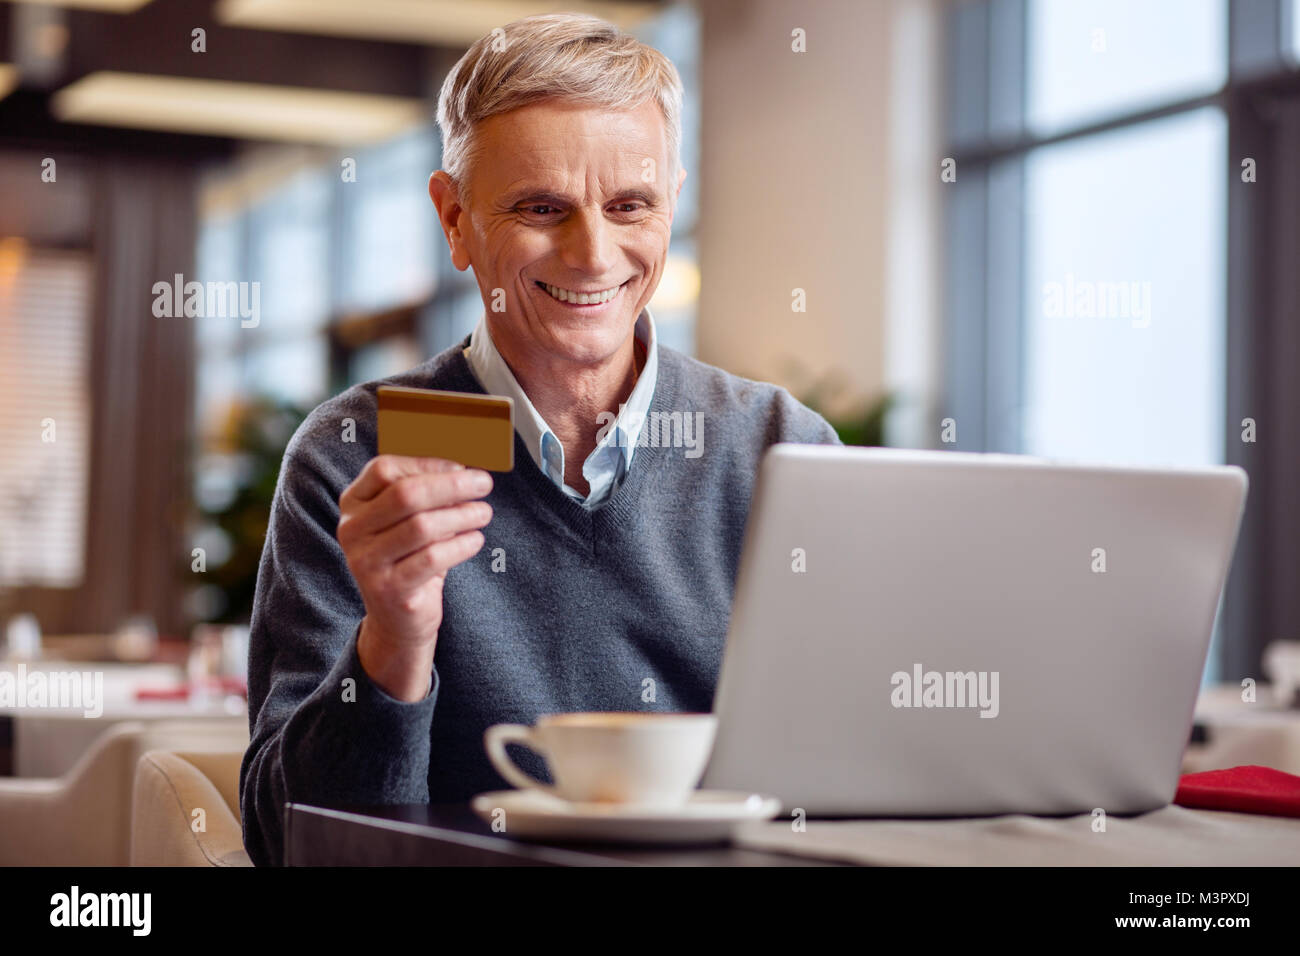 Happy mature man paying online - Stock Image